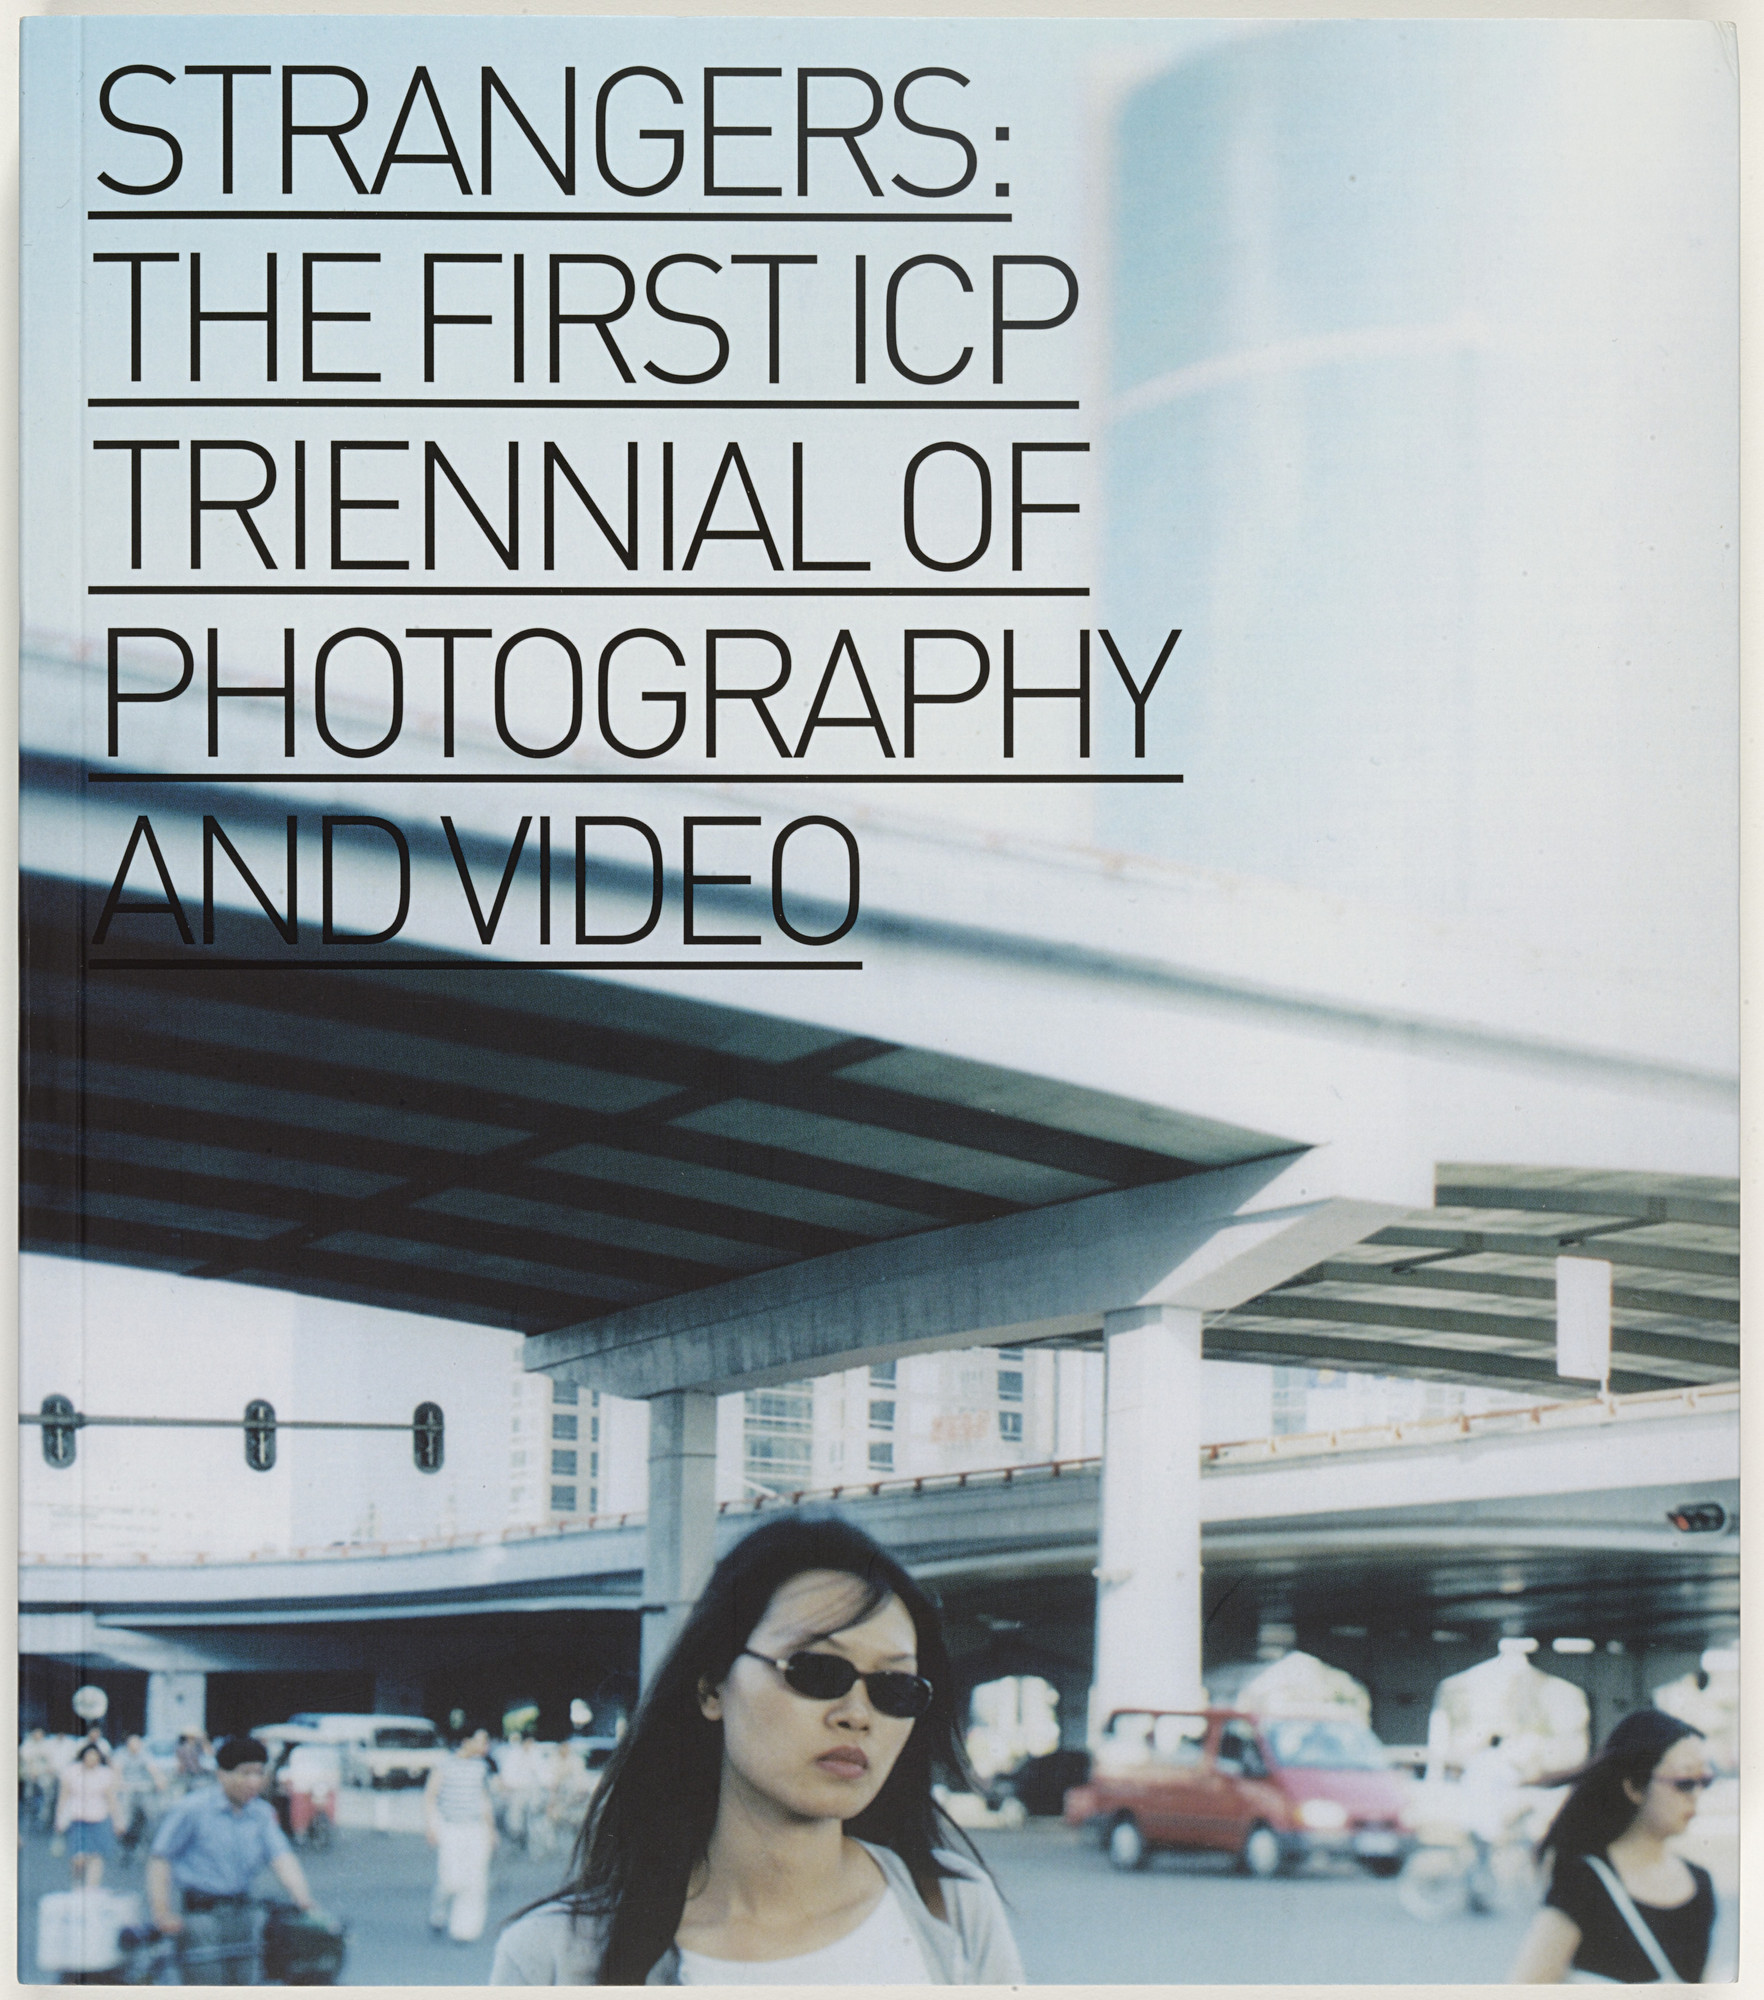 COMA Amsterdam / New York, Cornelia Blatter, Marcel Hermans. Strangers: The First ICP Triennial of Photography and Video. 2003